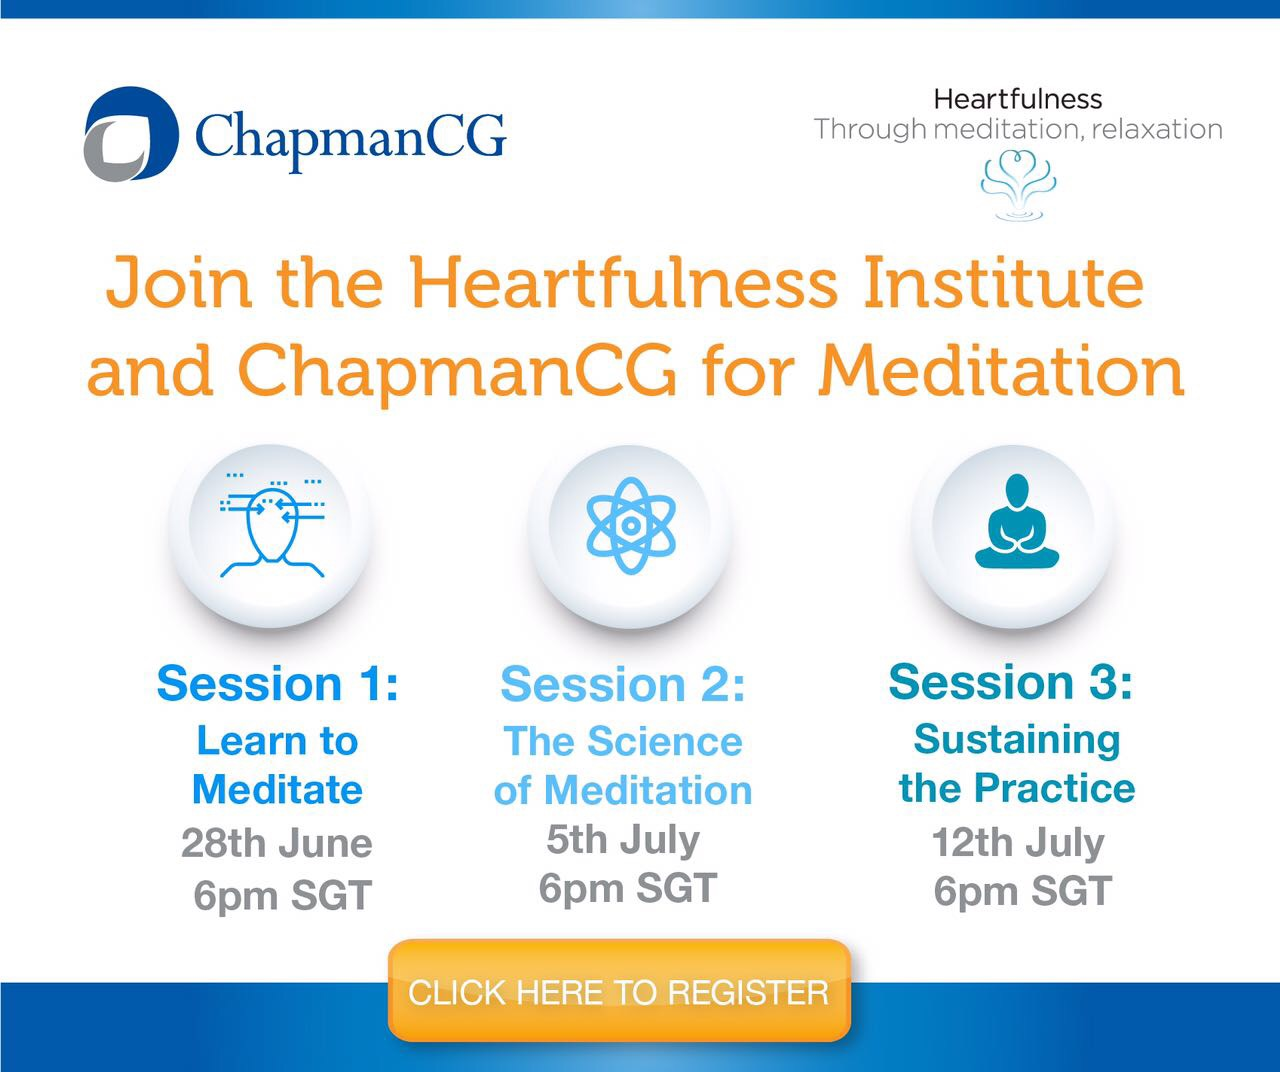 ChapmanCG and the Heartfulness Institute Meditation Series